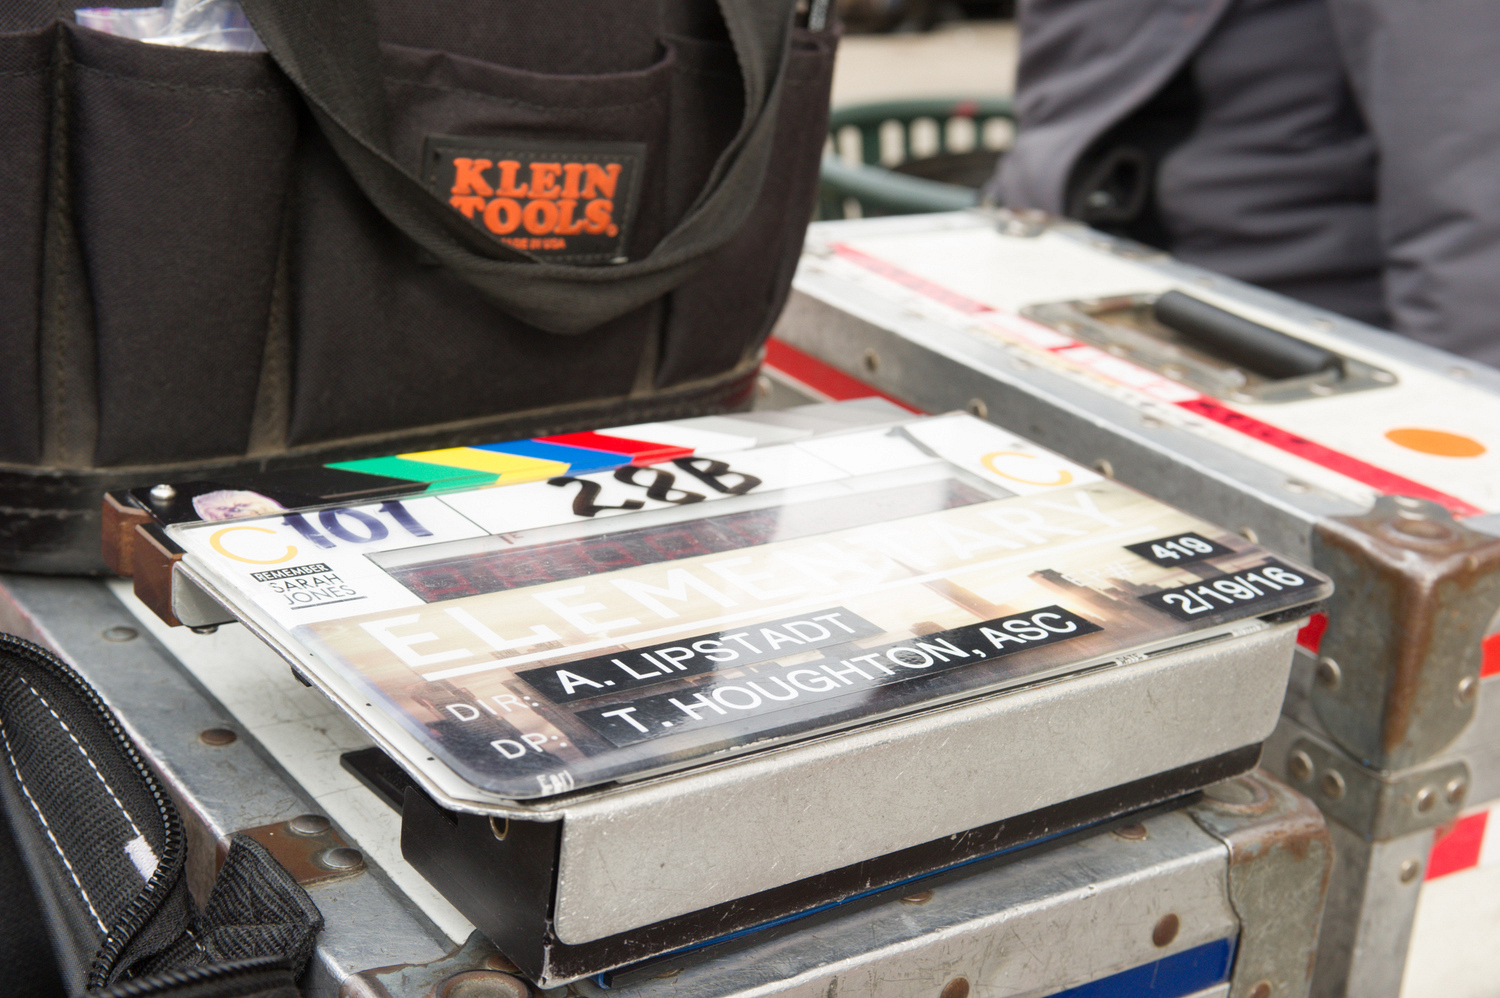 A clapboard listing the episode's director and director of photography